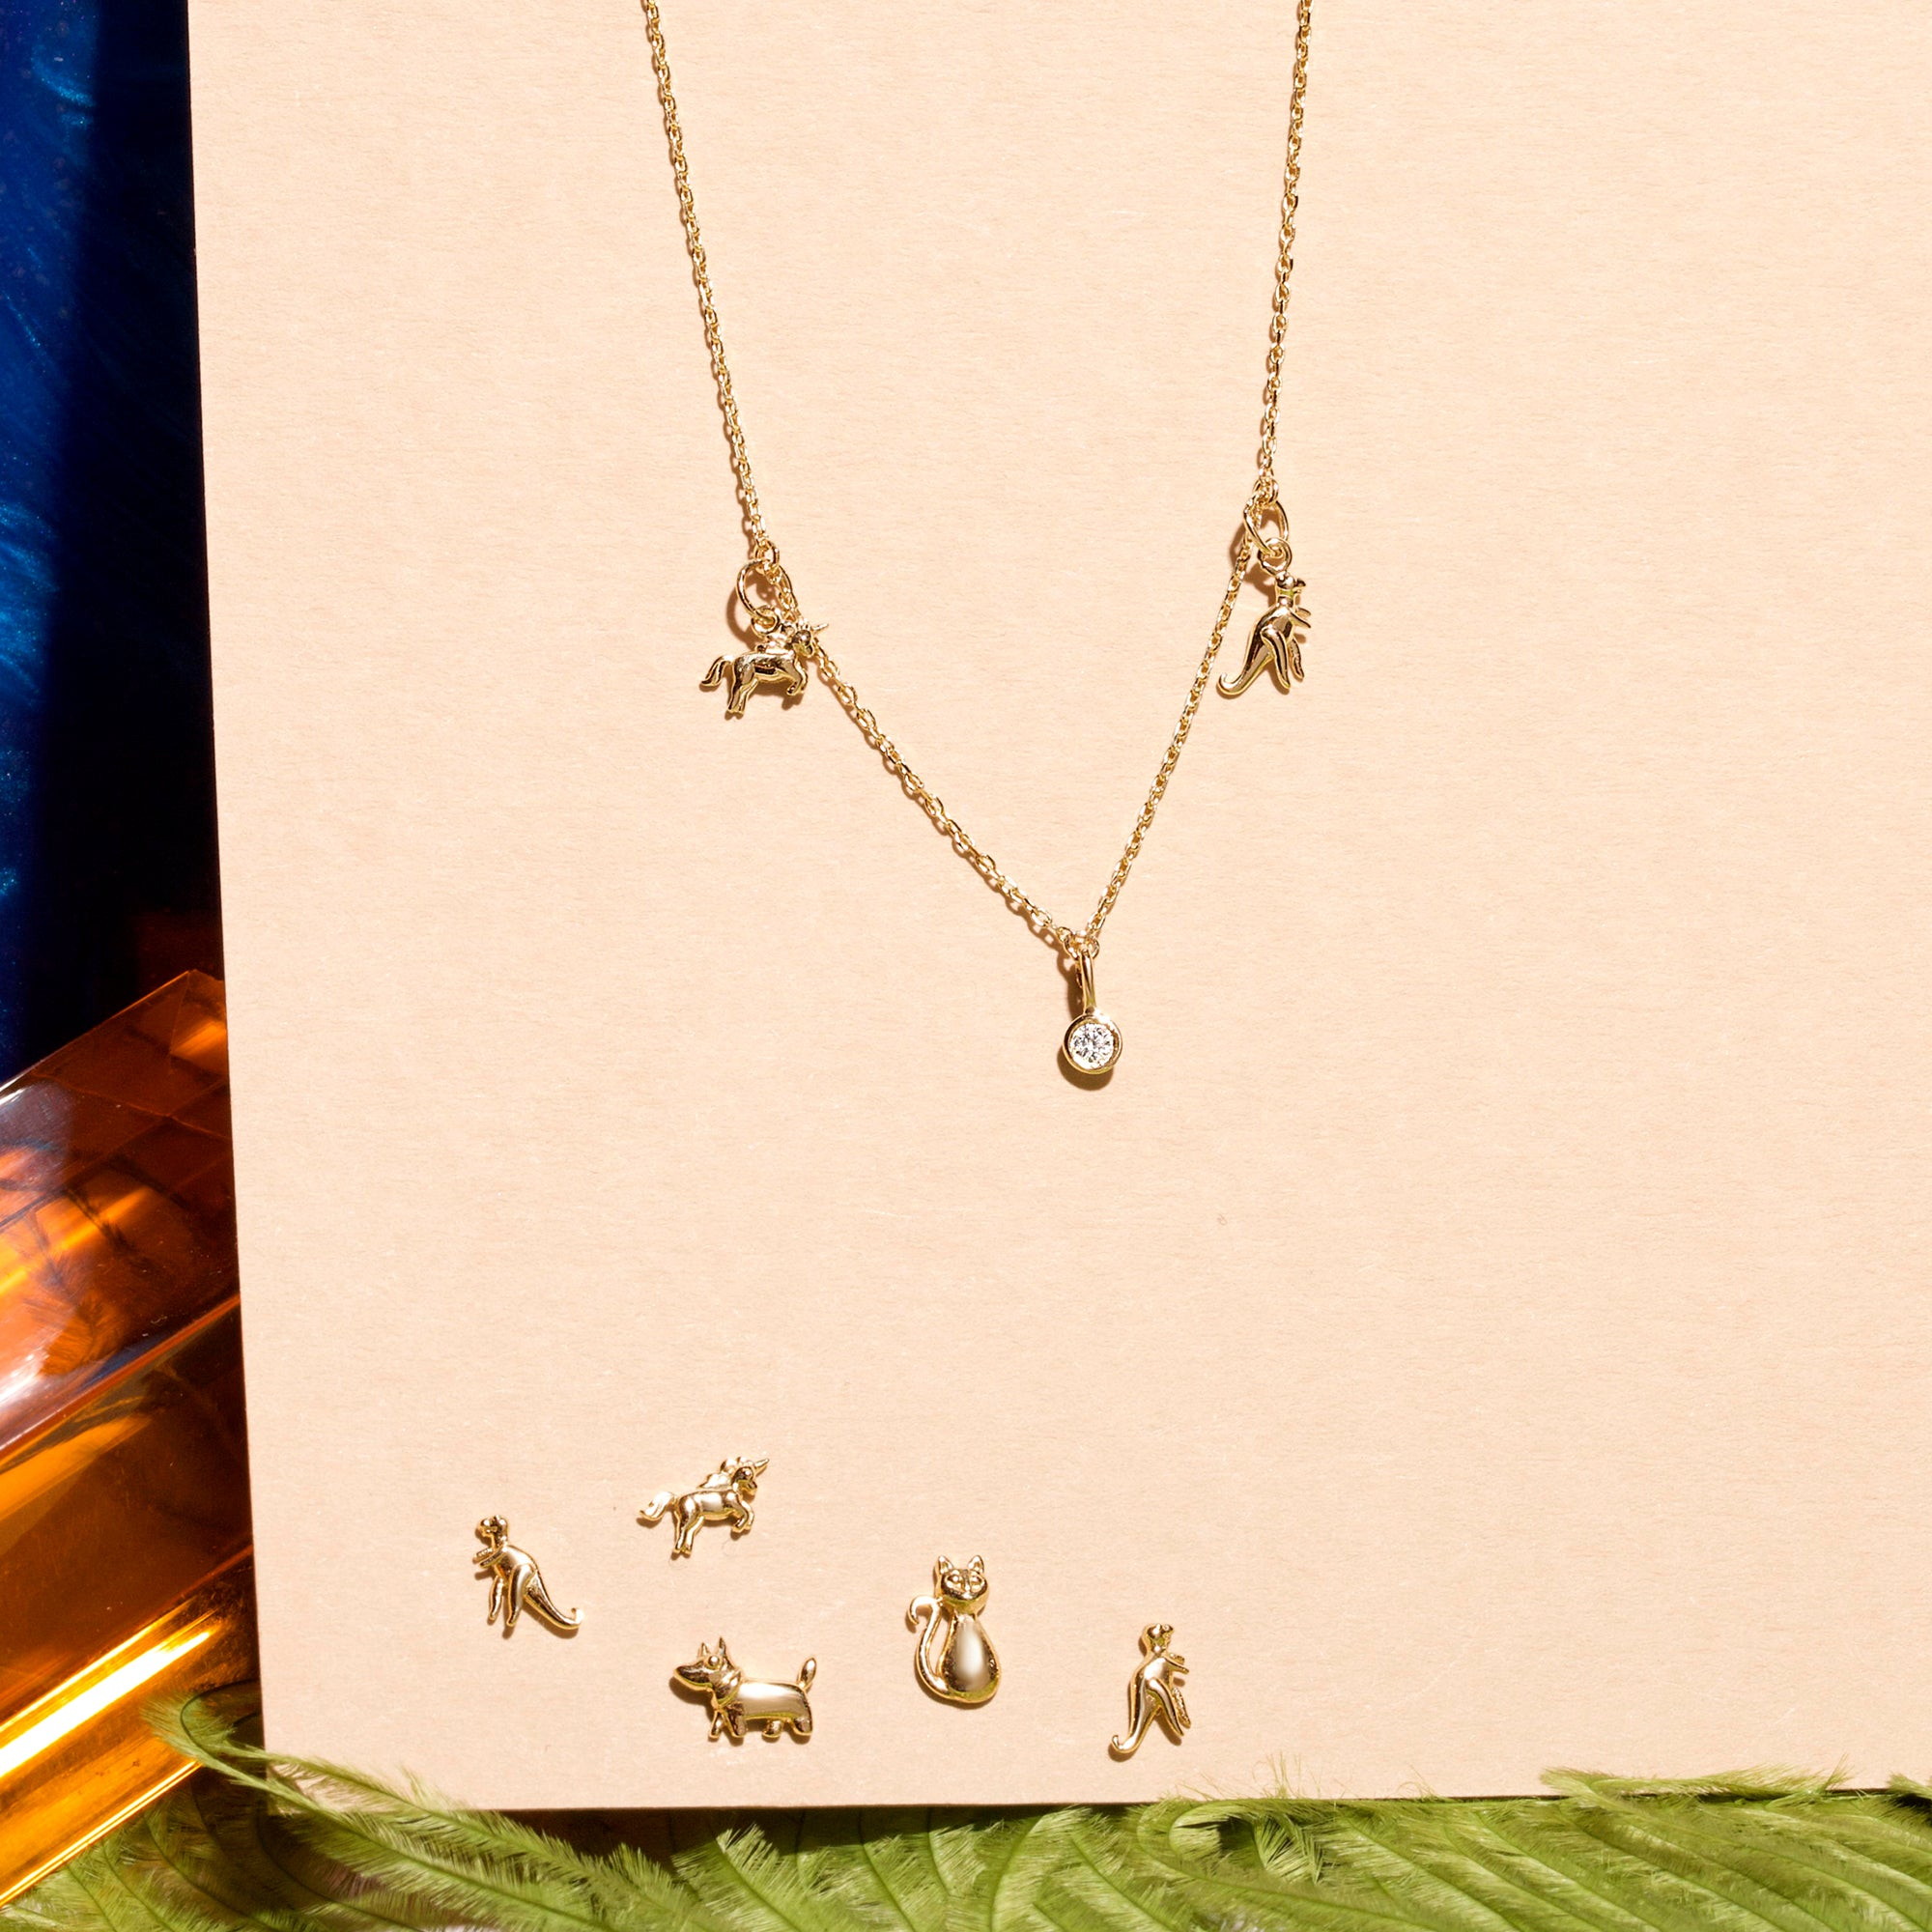 Lucky Charms Mini Animal Necklace